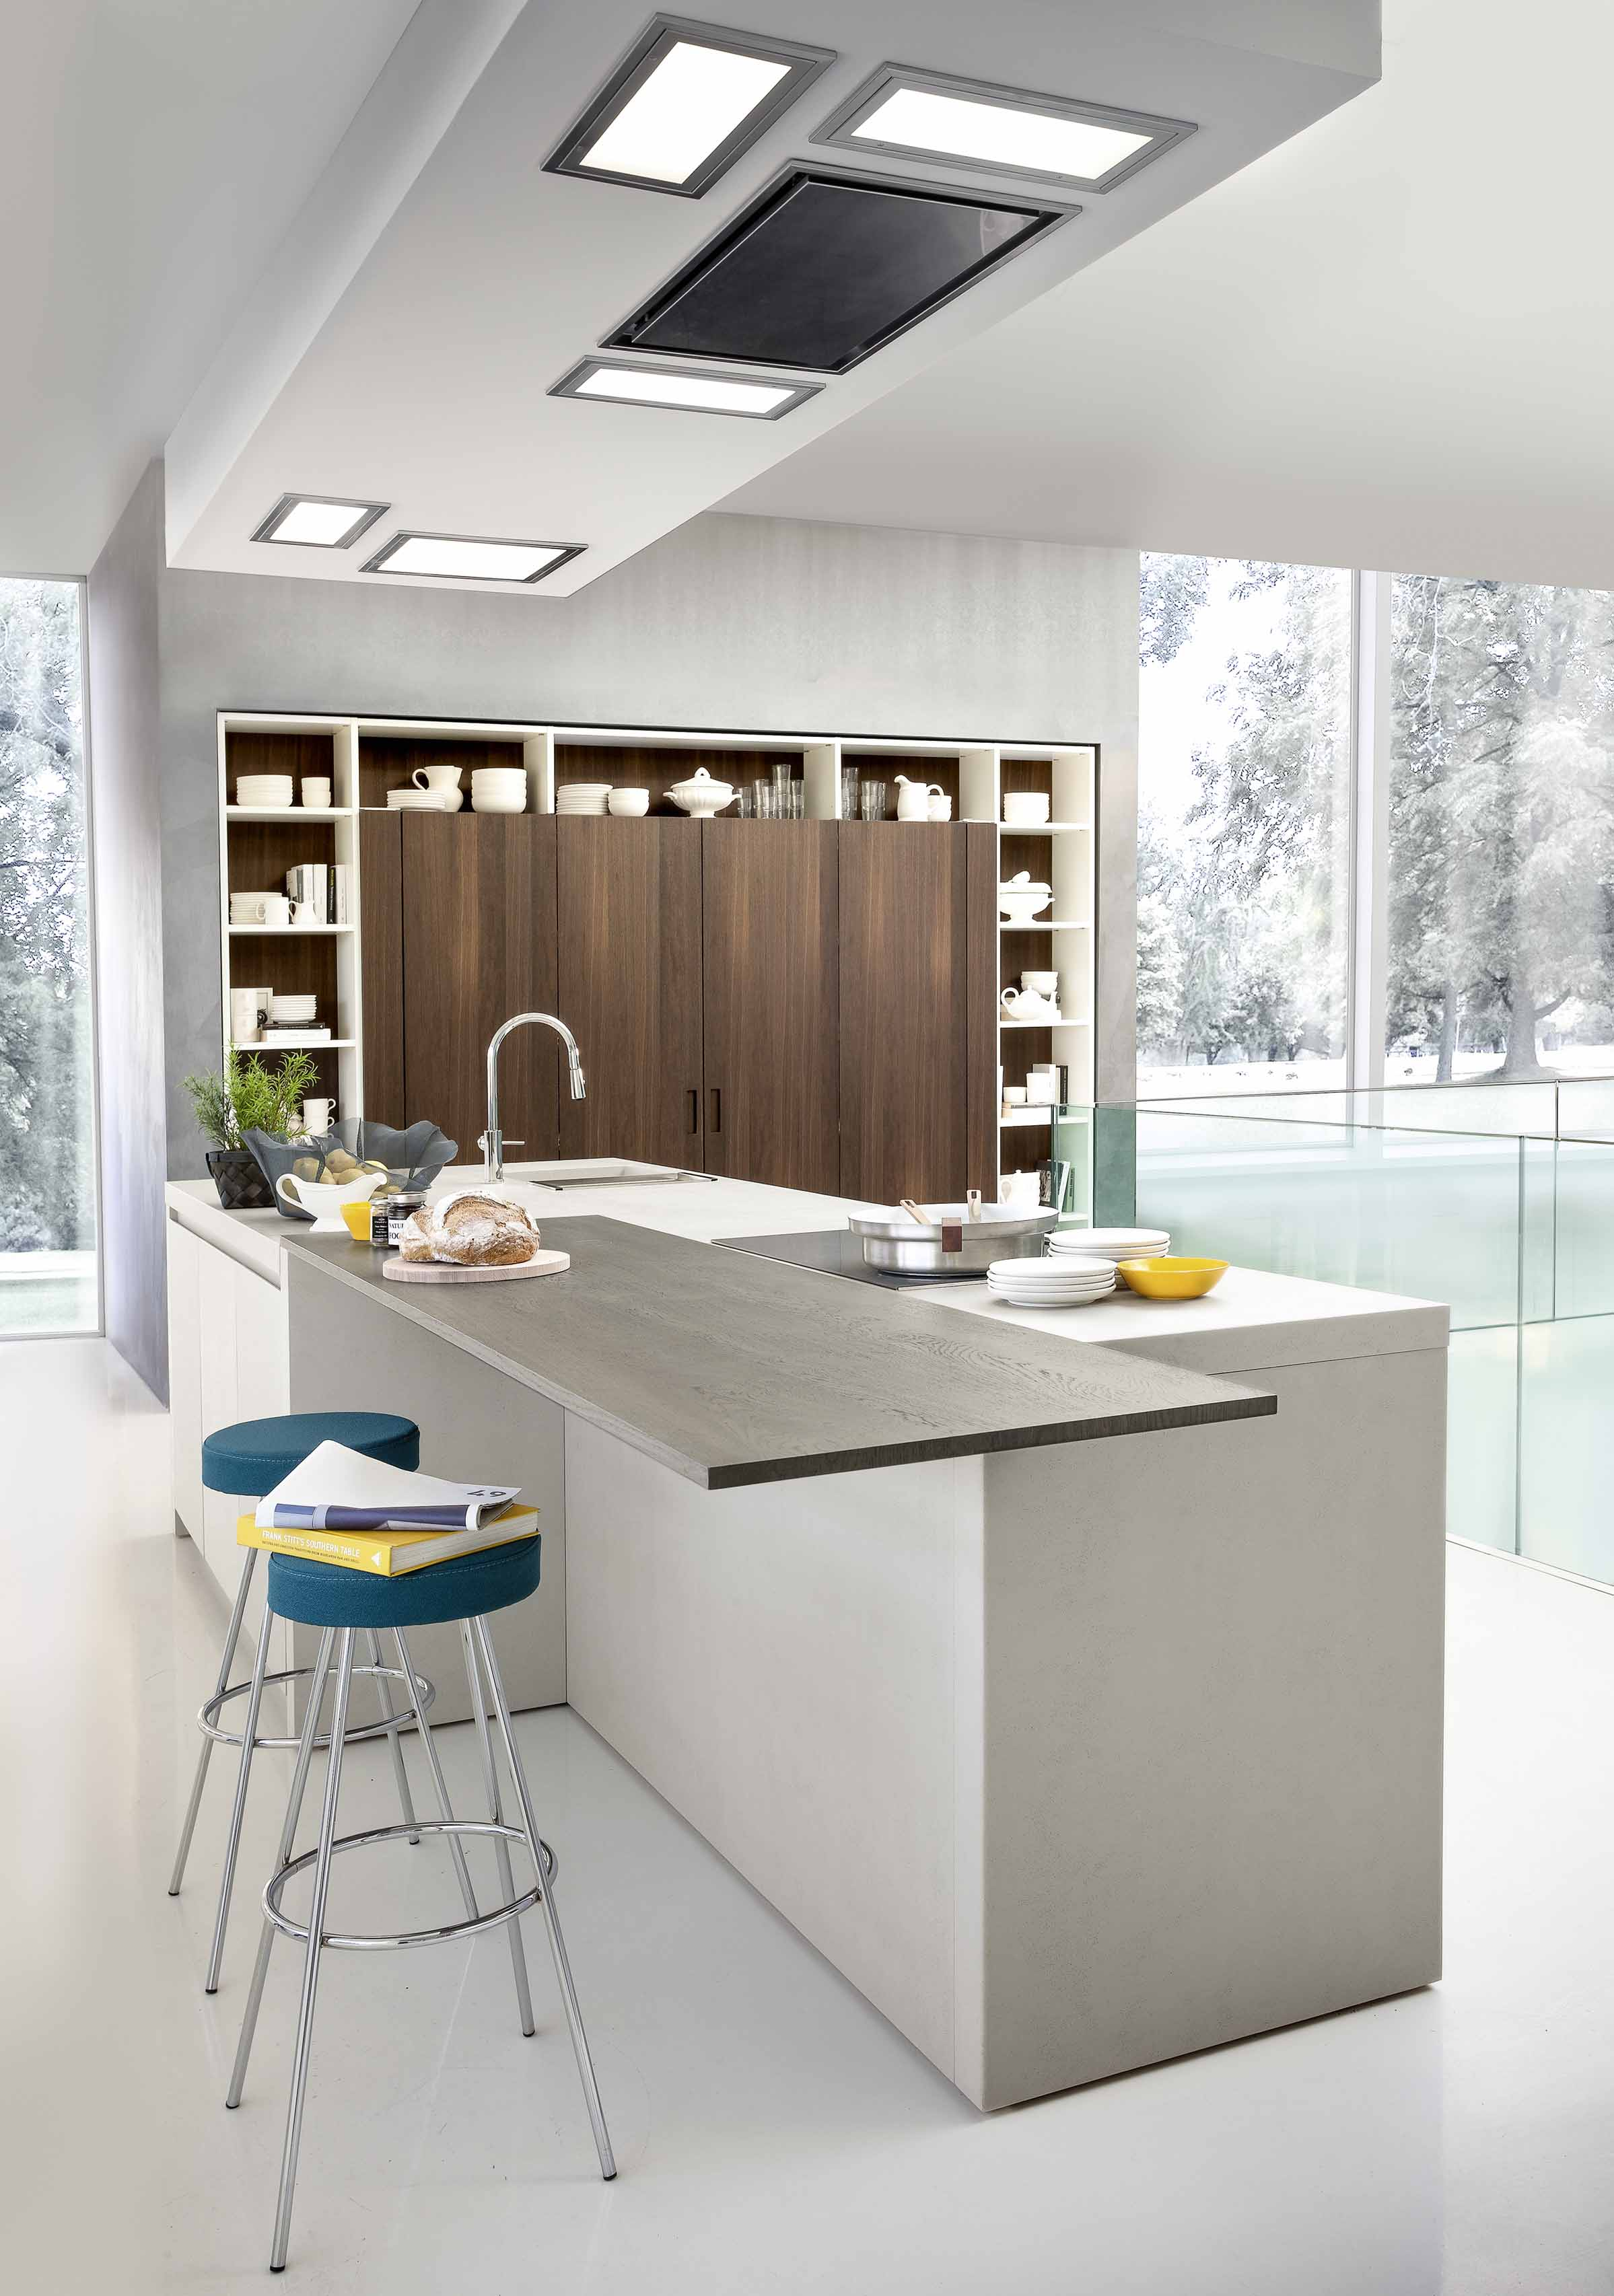 Urban myth more than a kitchen how to design the - How to design the perfect kitchen ...